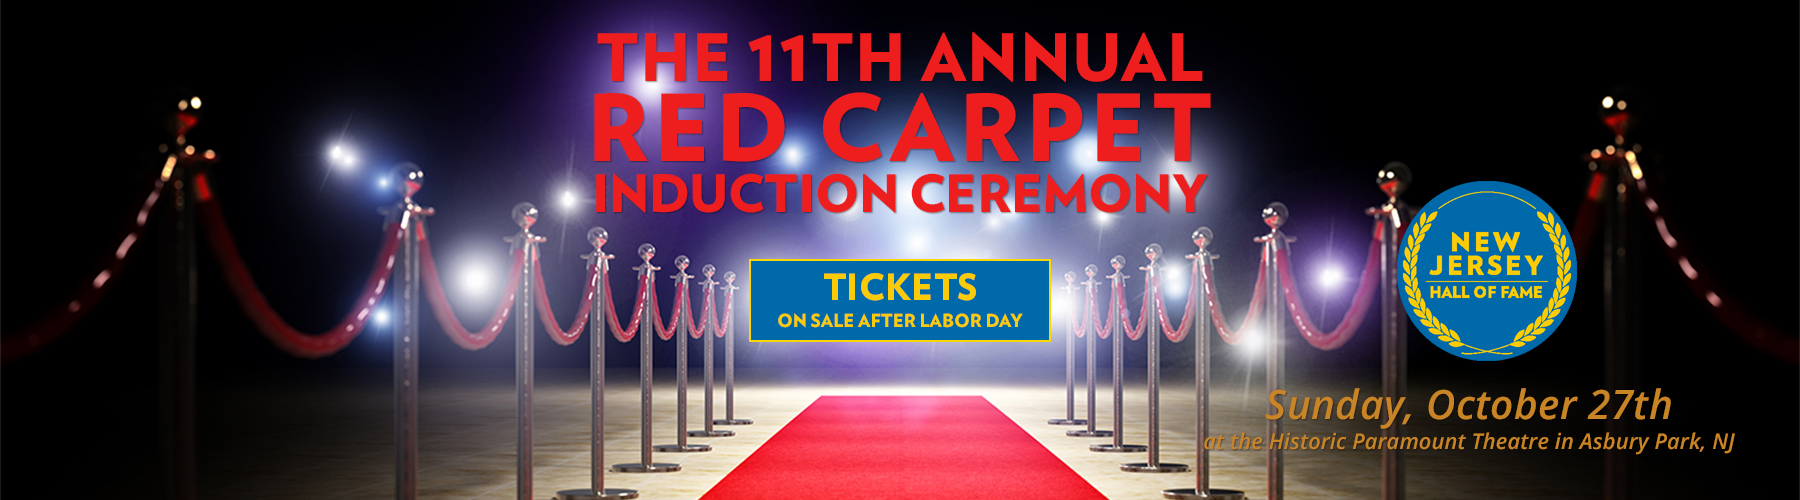 NJHOF Red Carpet Induction Tickets Available After Labor Day